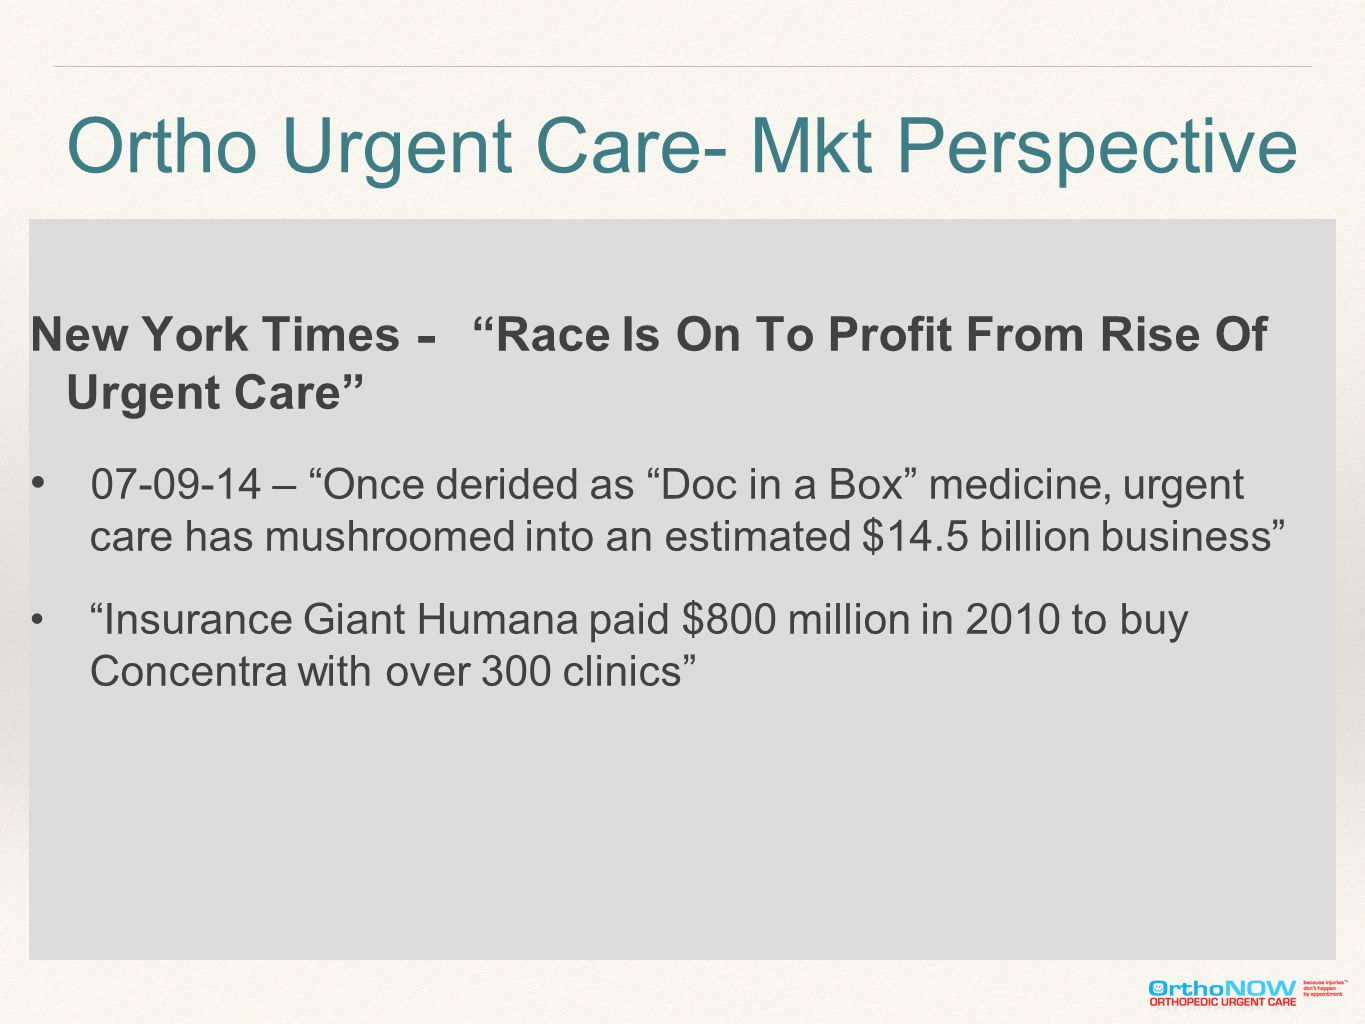 Ortho Urgent Care- Mkt Perspective New York Times - Race Is On To Profit From Rise Of Urgent Care 07-09-14 – Once derided as Doc in a Box medicine, urgent care has mushroomed into an estimated $14.5 billion business Insurance Giant Humana paid $800 million in 2010 to buy Concentra with over 300 clinics